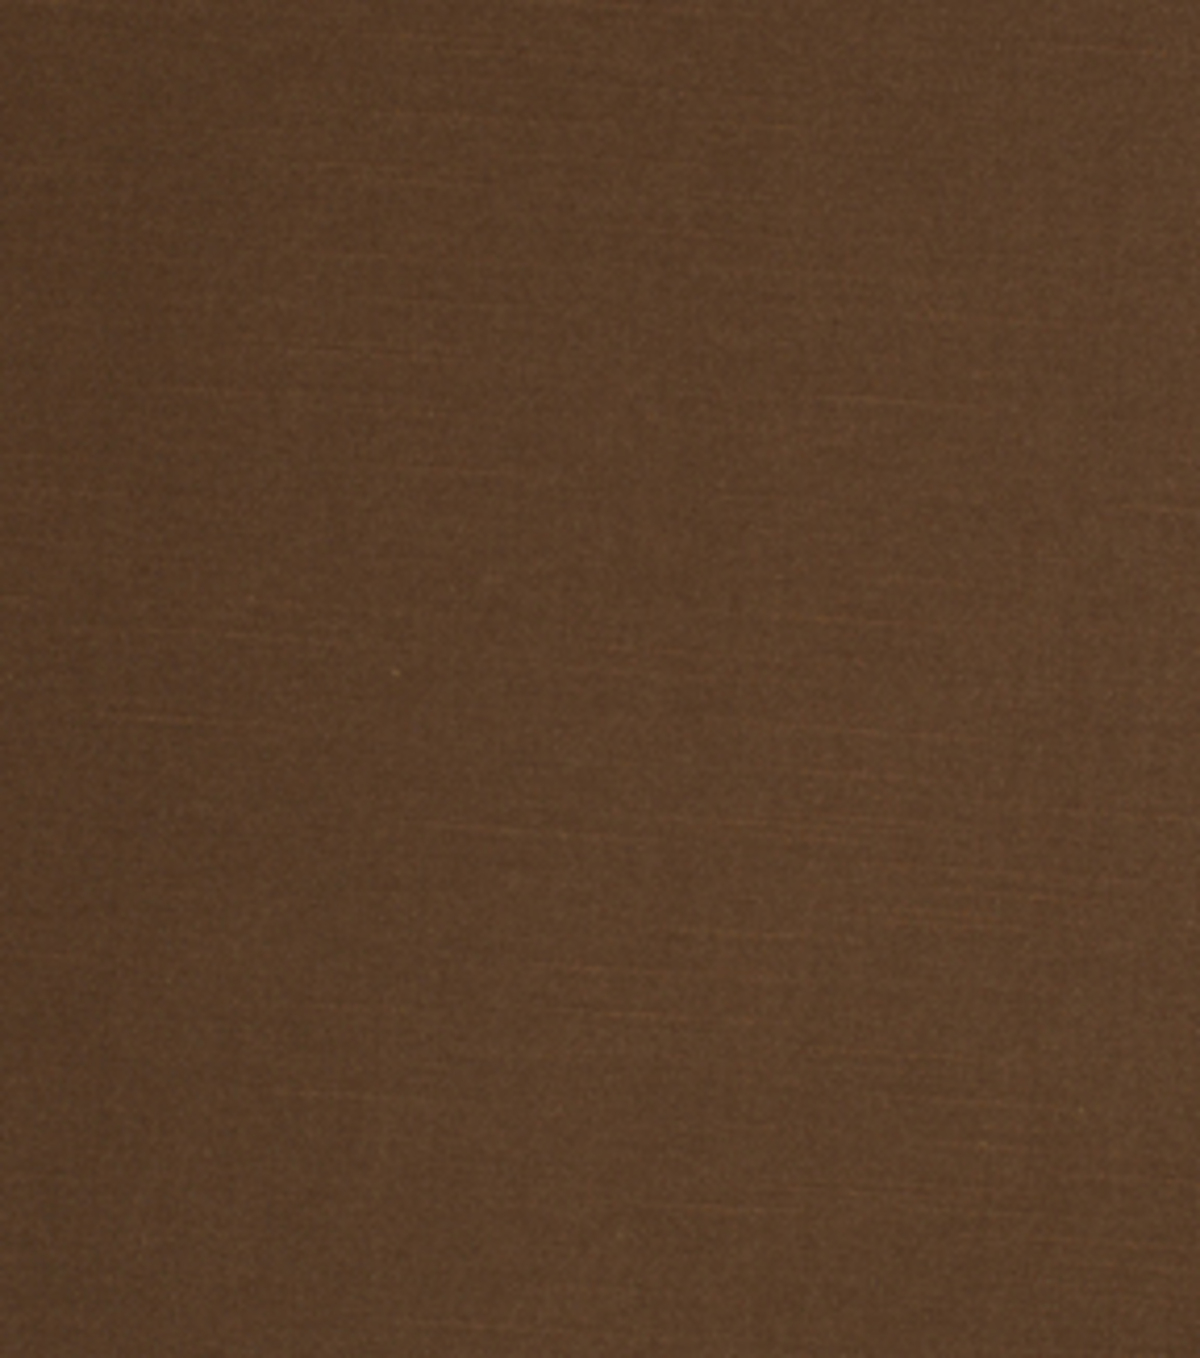 Home Decor 8\u0022x8\u0022 Fabric Swatch-Richloom Studio Silky Branch